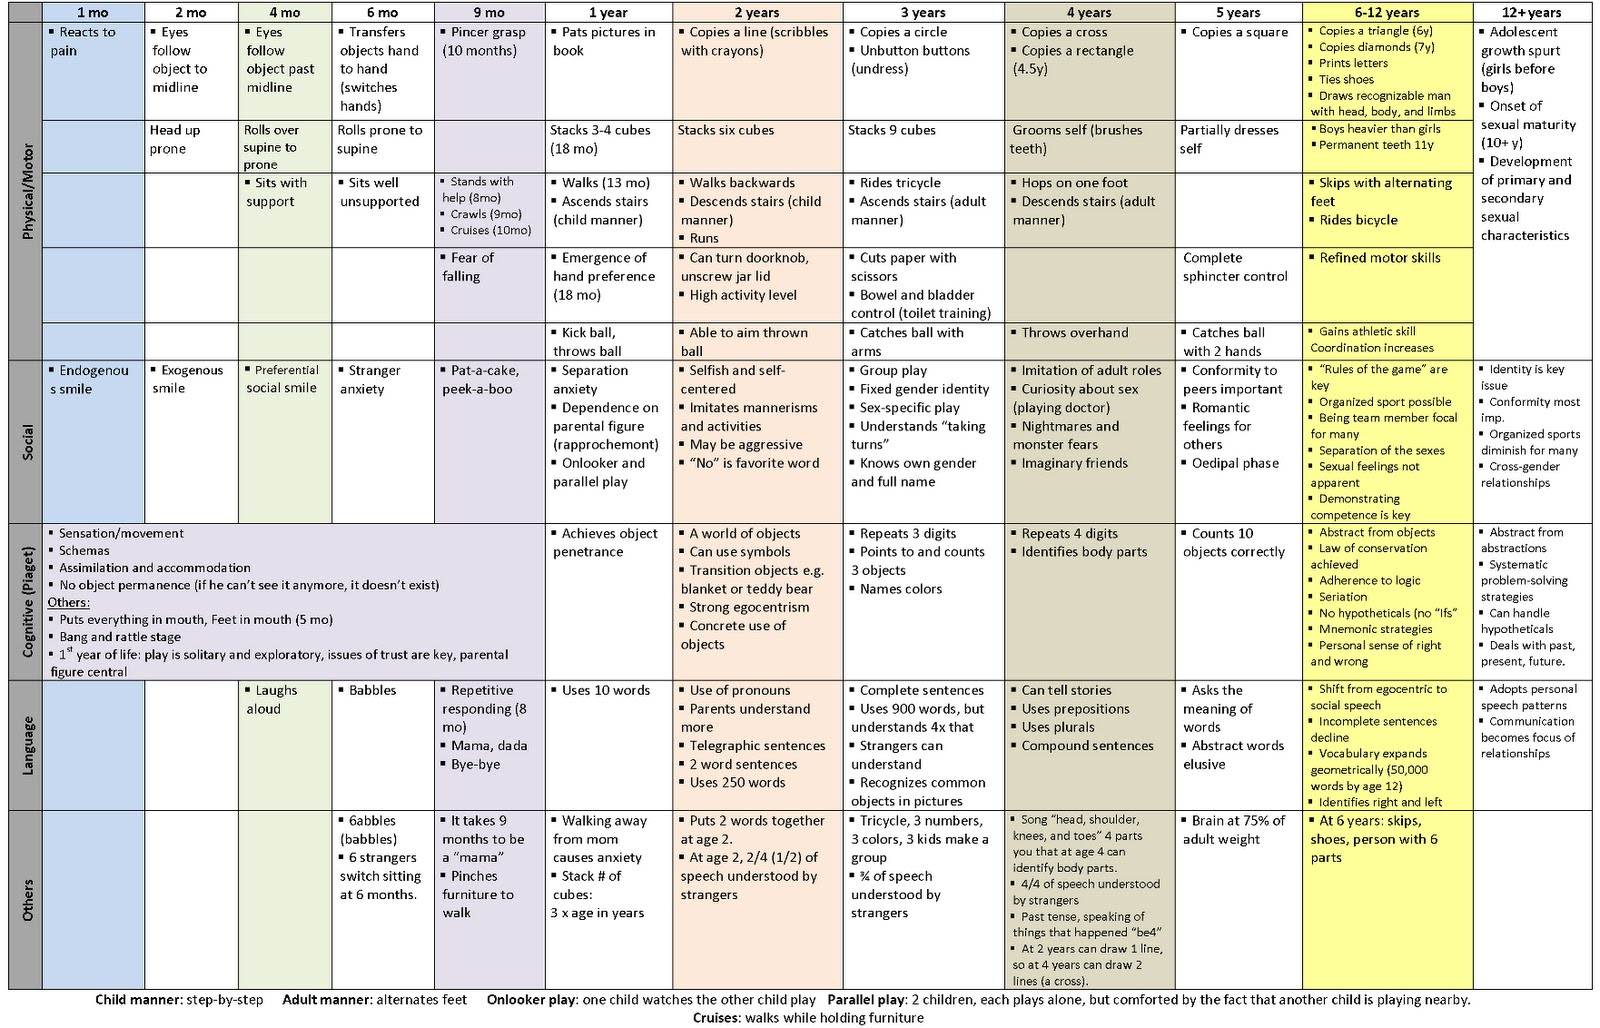 Cts medicine how to learn understand and memorize pediatric at what age we should expect each of these to develop it is a lot of information when i had to memorize this stuff i memorized it from this chart nvjuhfo Image collections